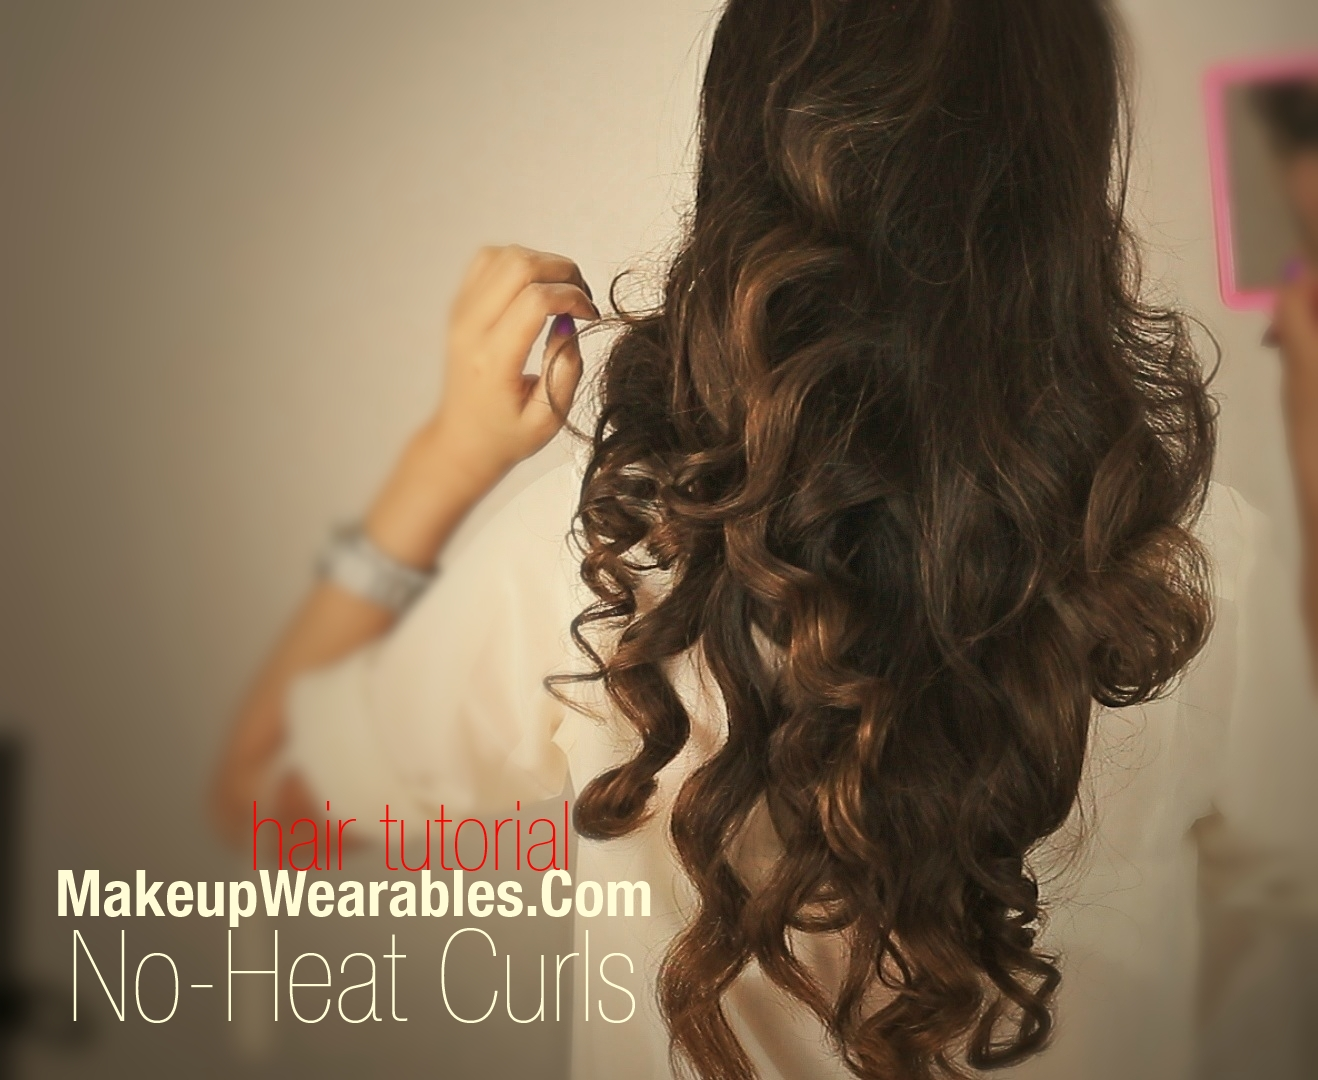 Kim Kardashian Hairstyles How To No Heat Curls Hair Tutorial Video